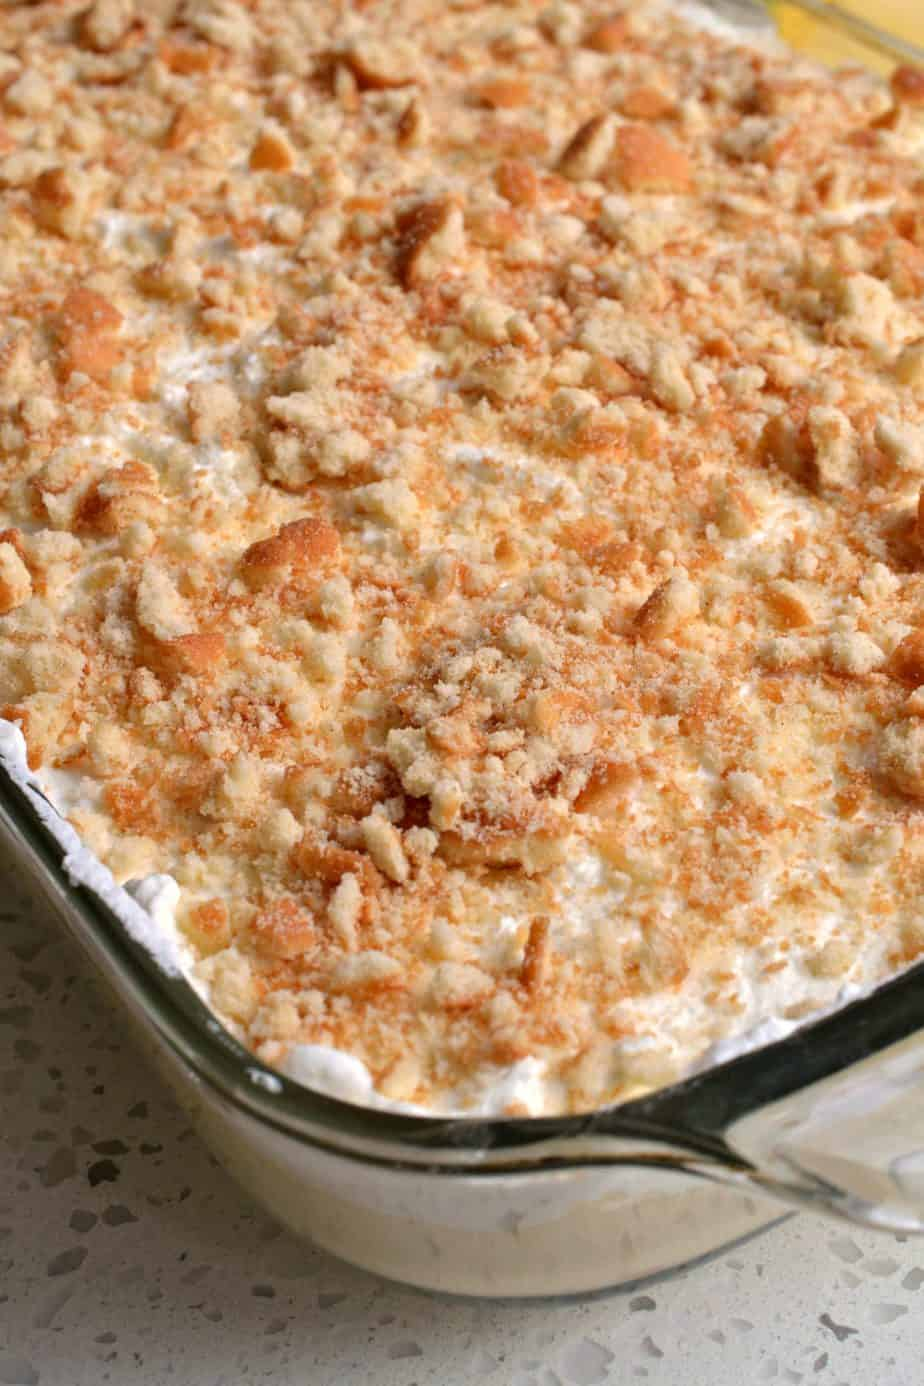 This completely from-scratch banana pudding is topped with fresh whipped cream and crumbled vanilla wafers